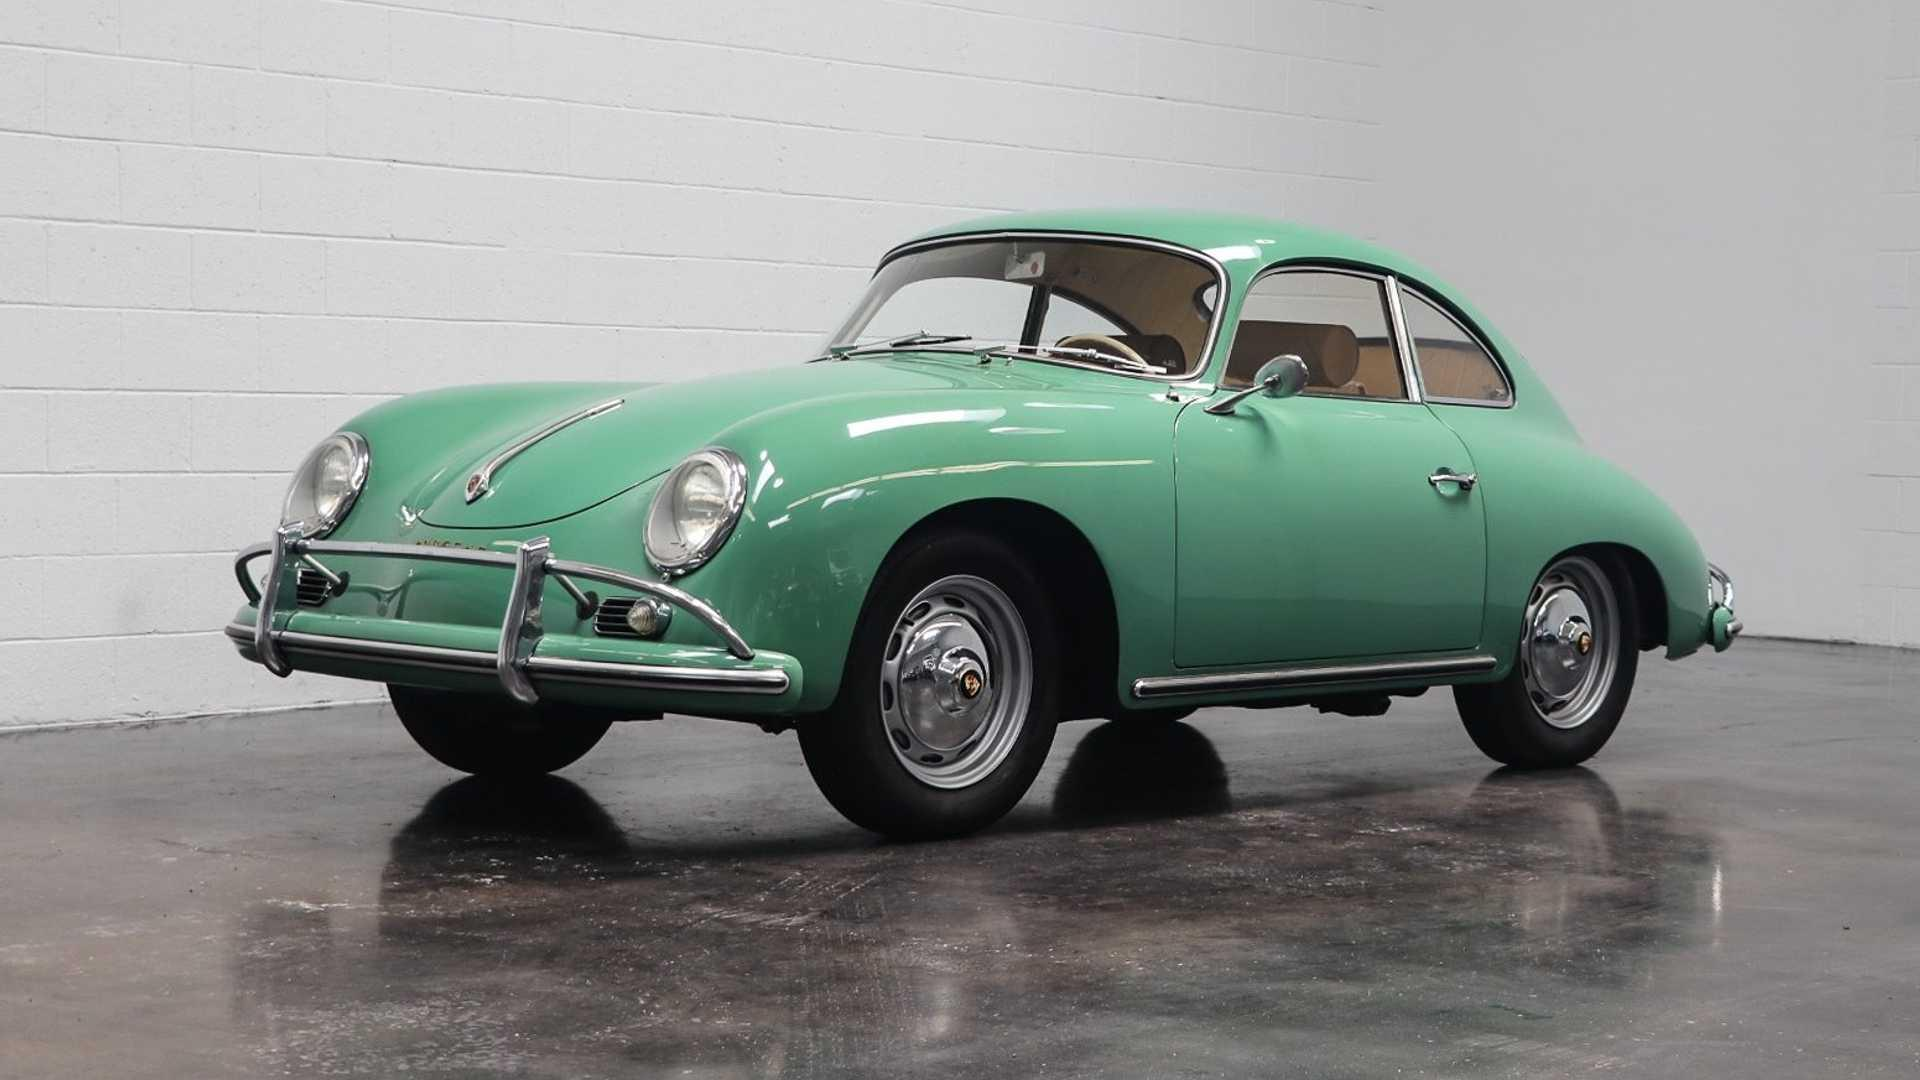 Is This 356 The Genesis Of Sports Cars?